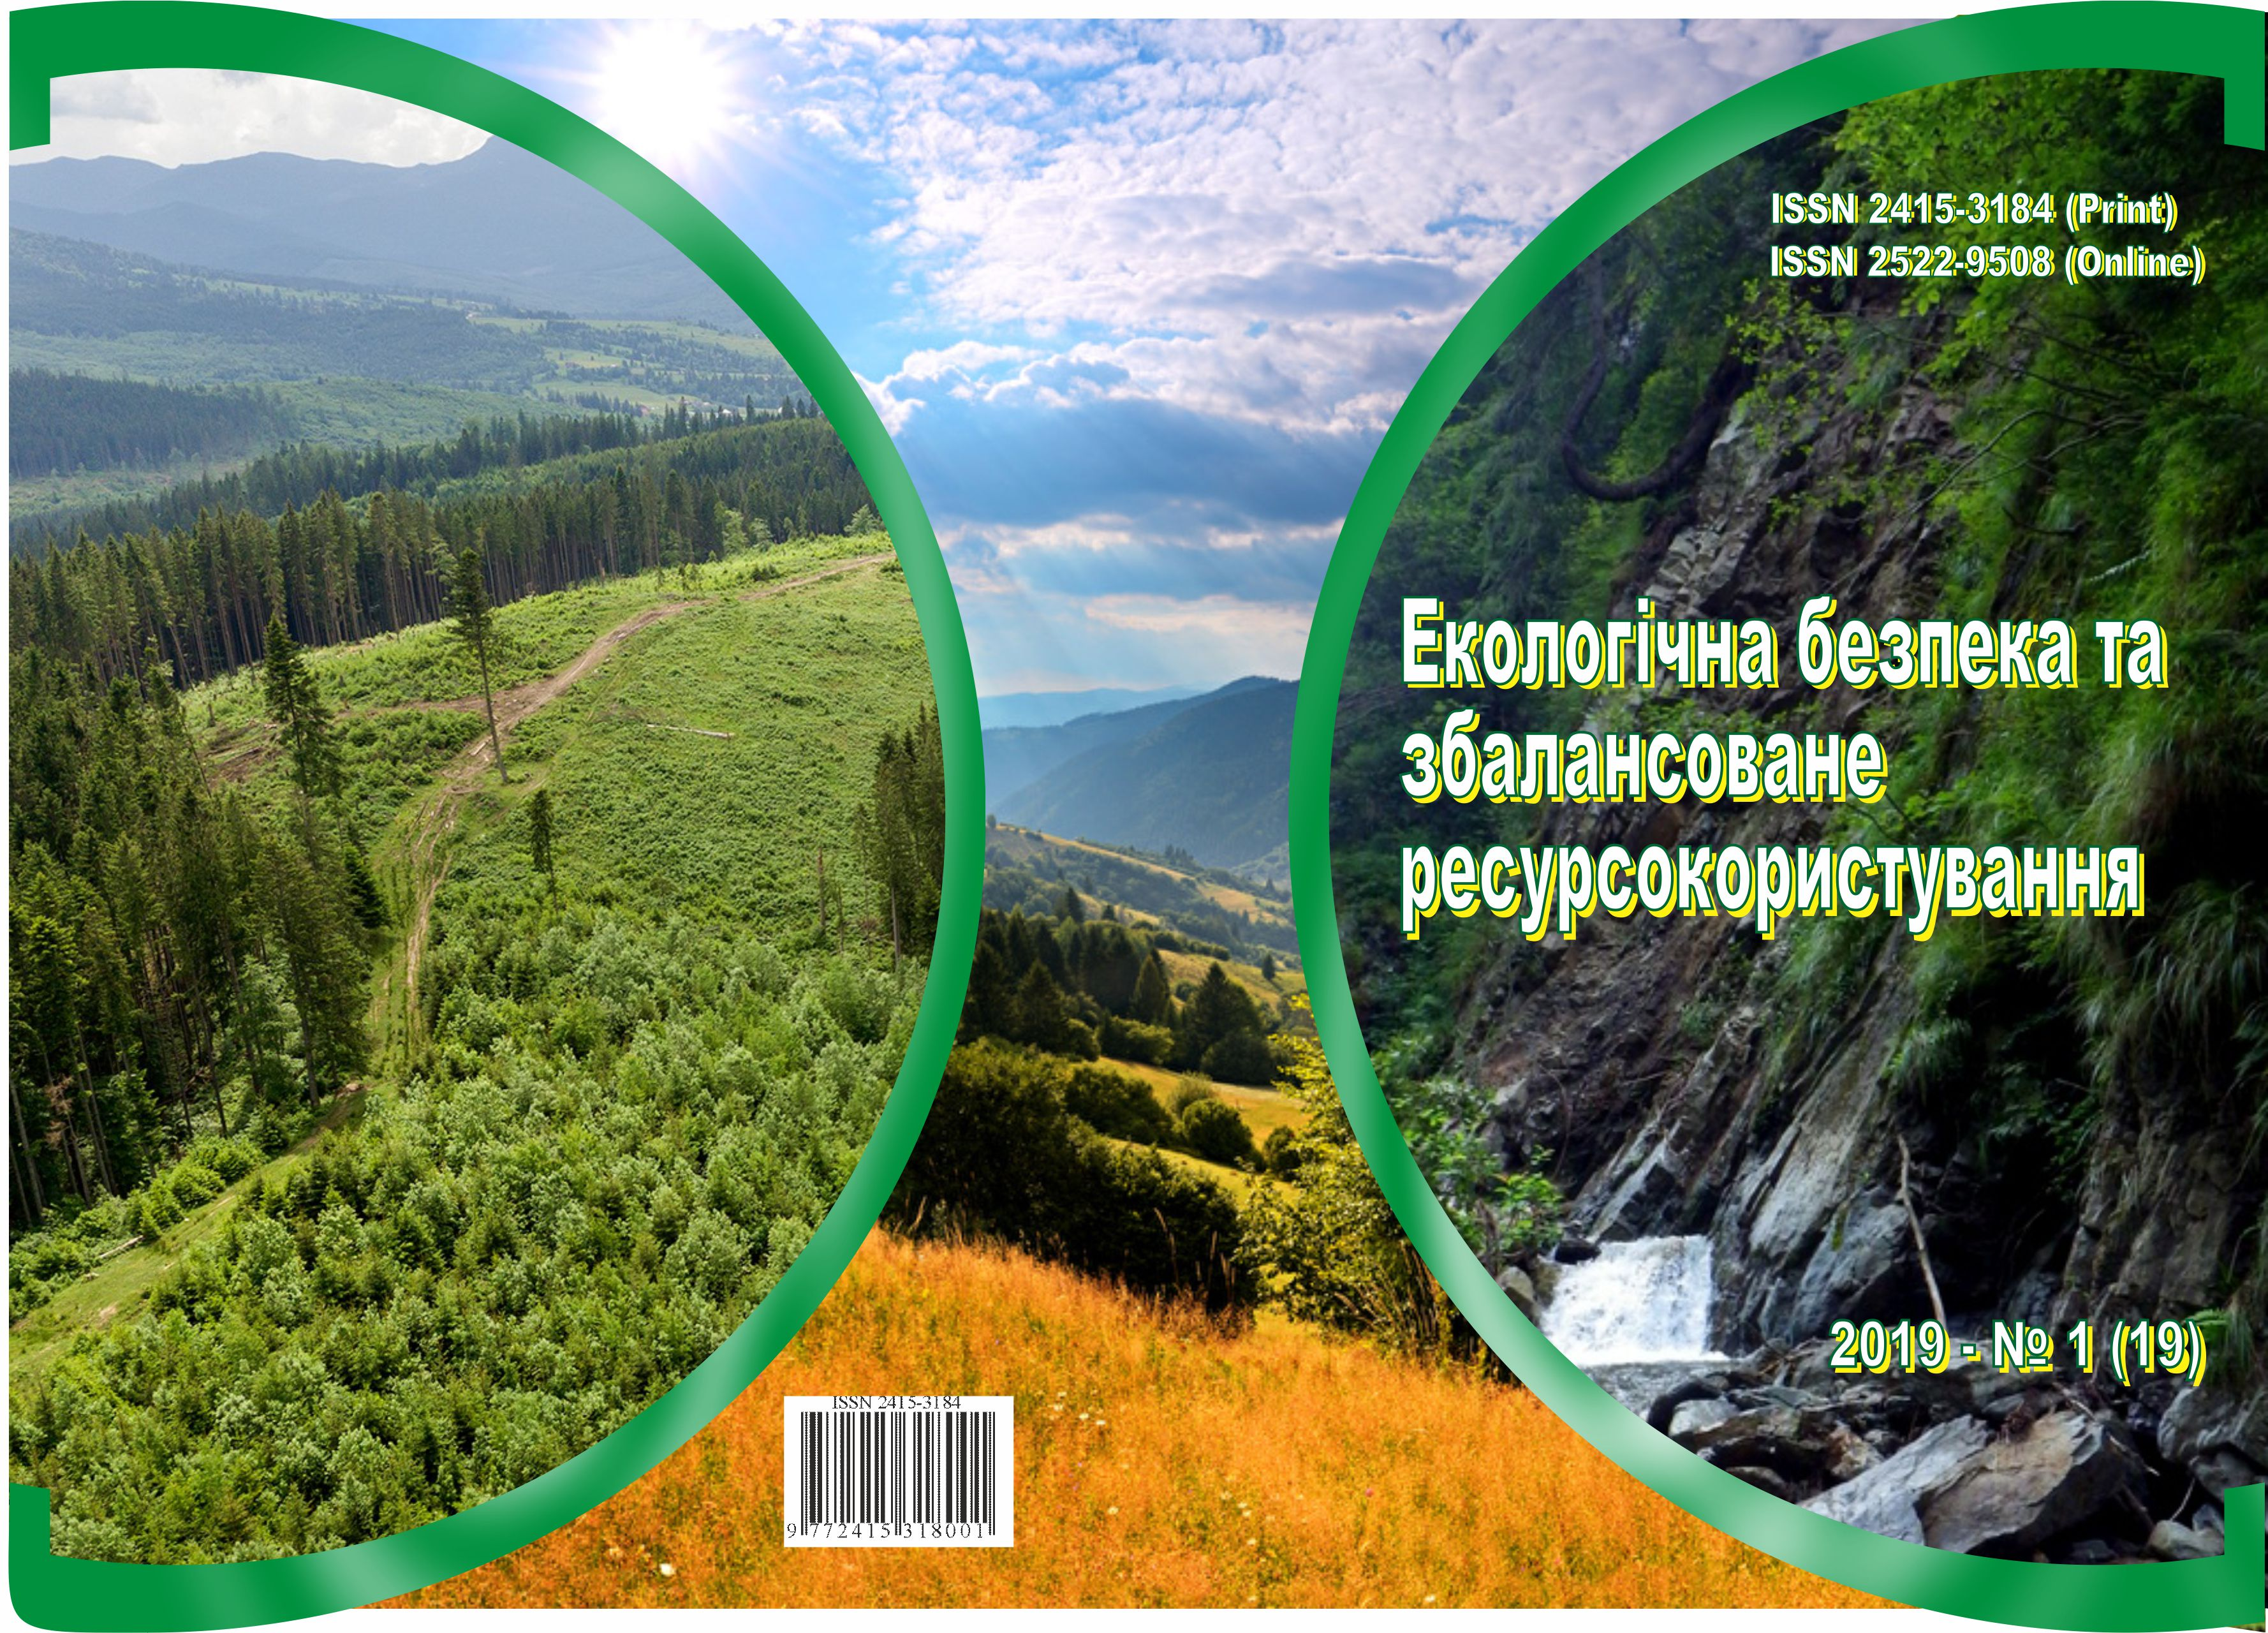 View No. 1(19) (2019): Ecological Safety and Balanced Use of Resources